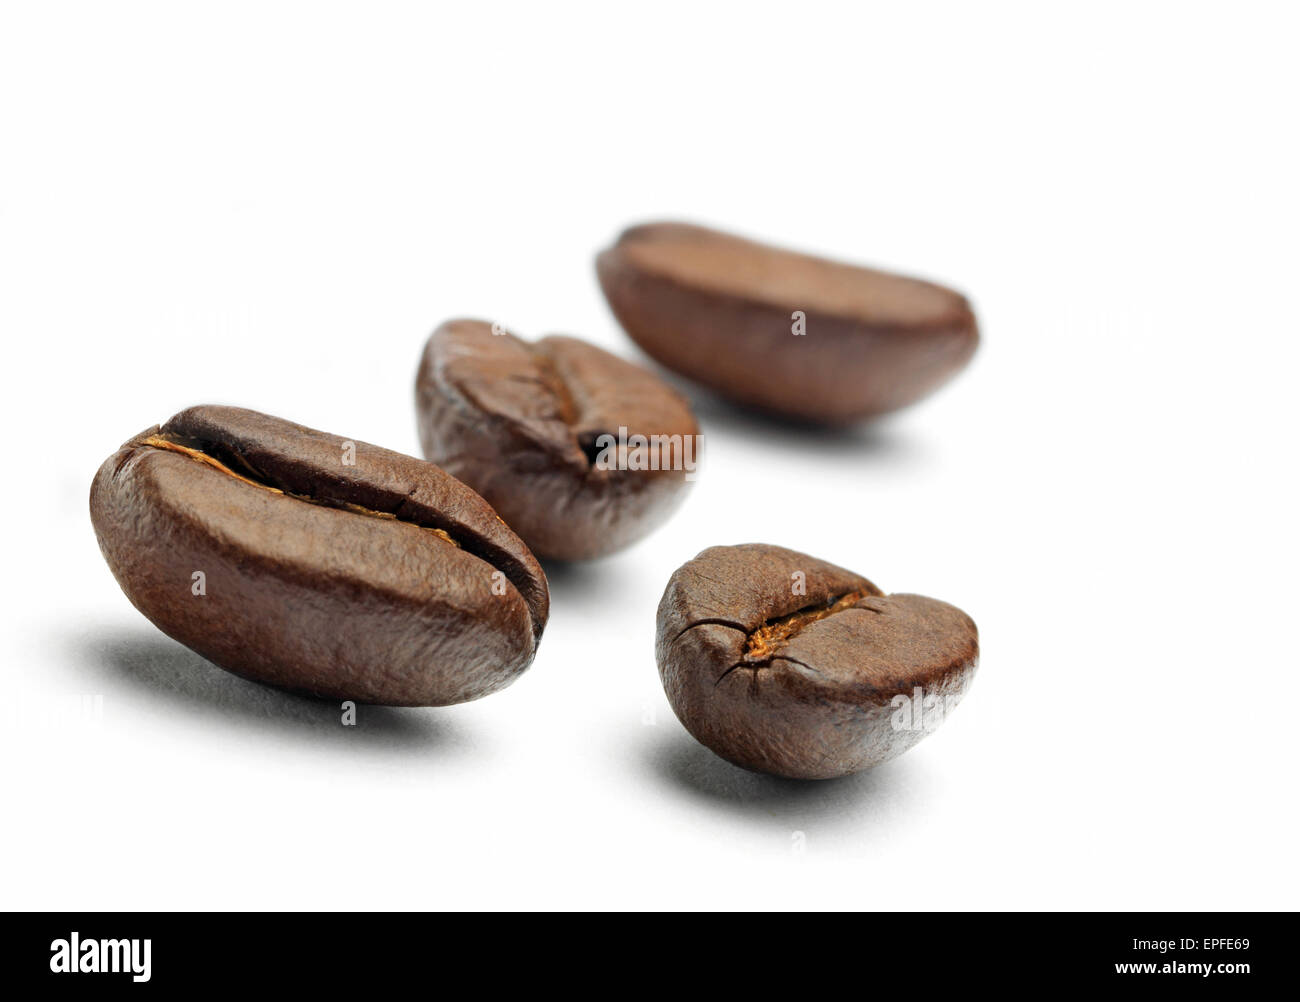 Isolated Coffee Beans - Stock Image